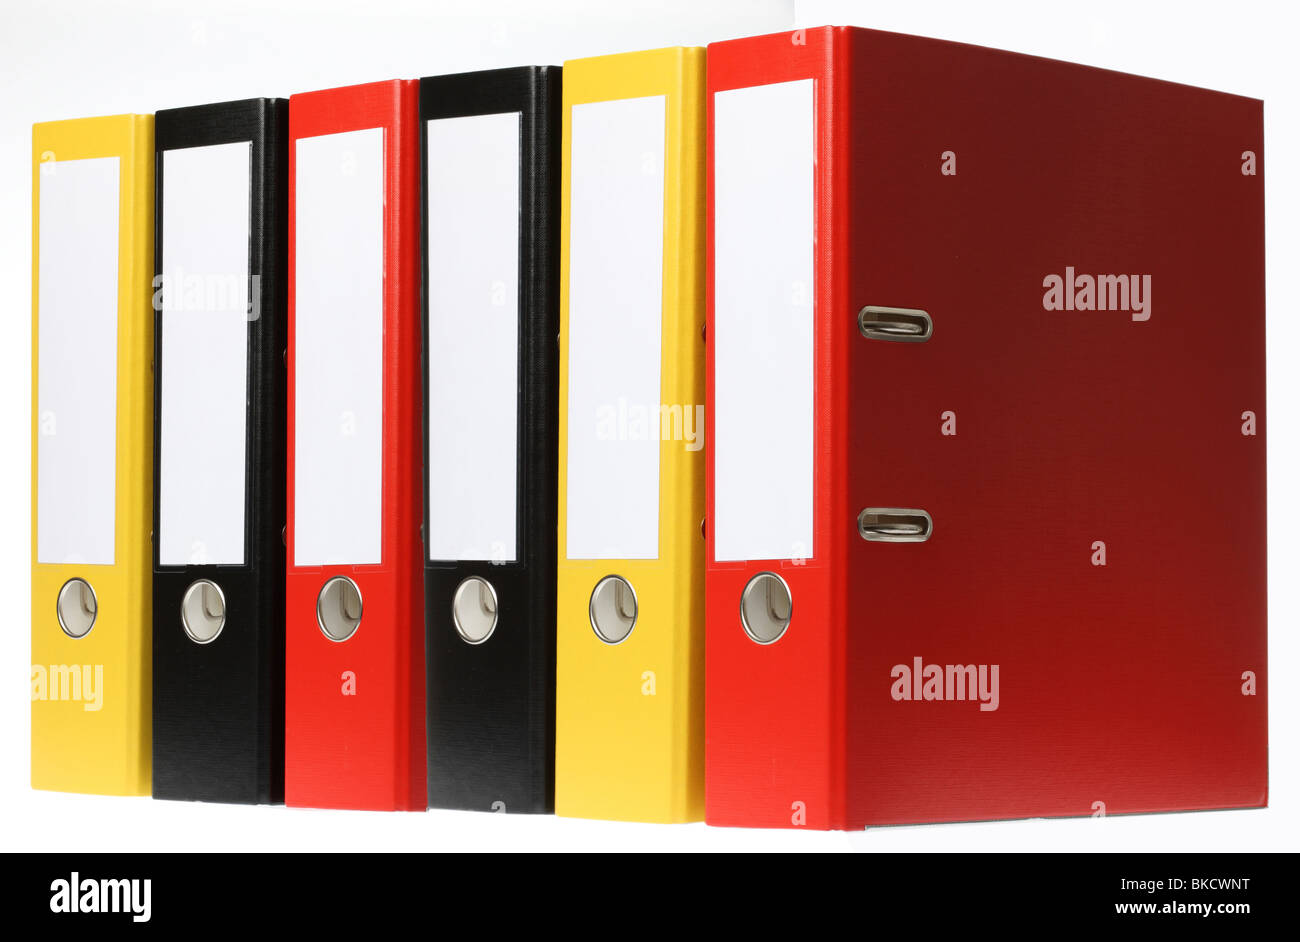 Document file, box file, office supply, paperwork  filing